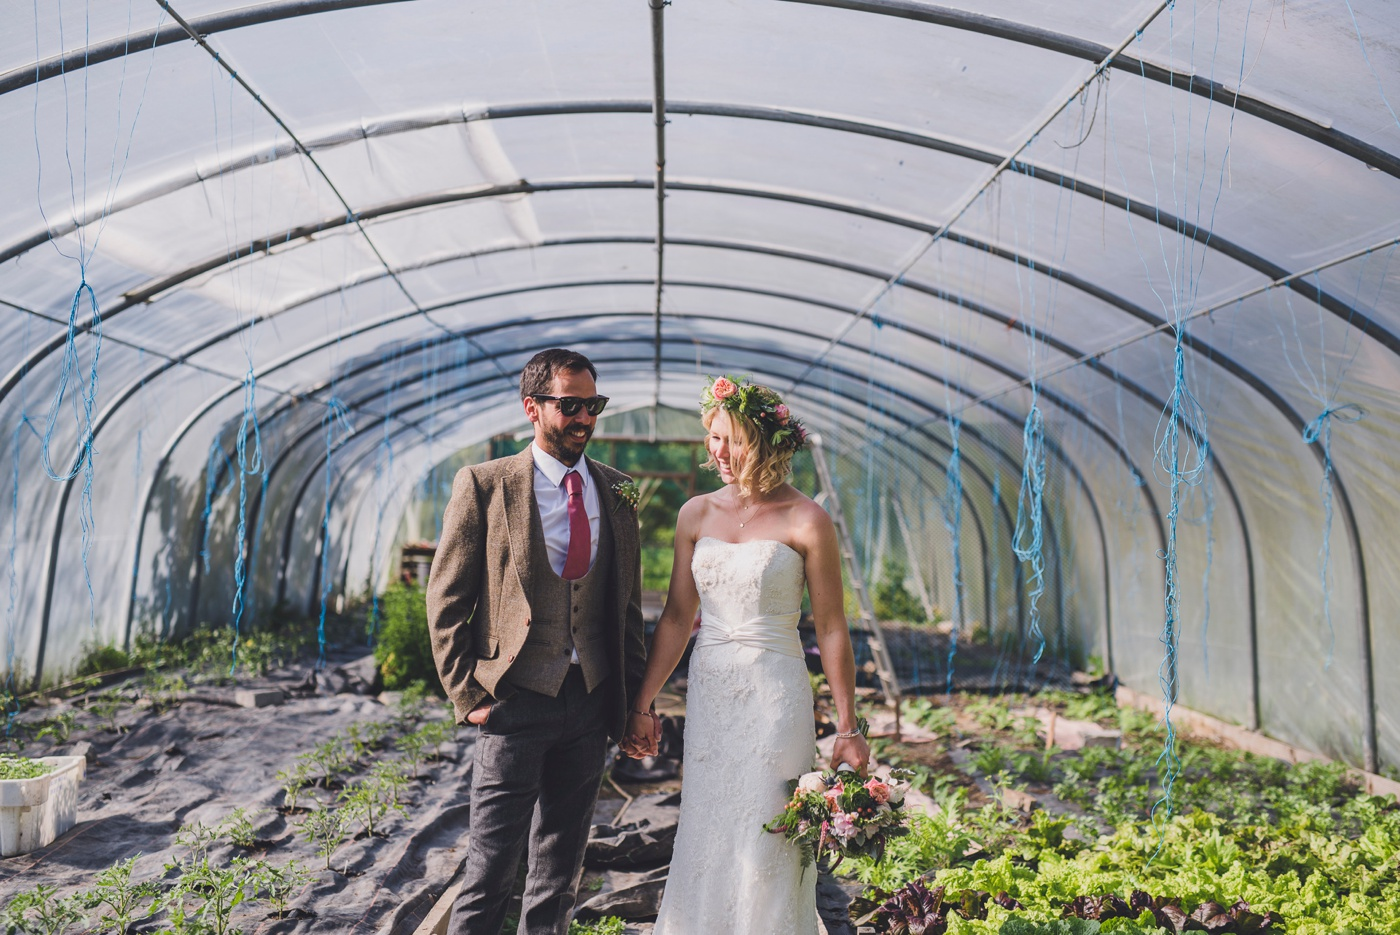 Greenhouse couple portraits Fforest wedding